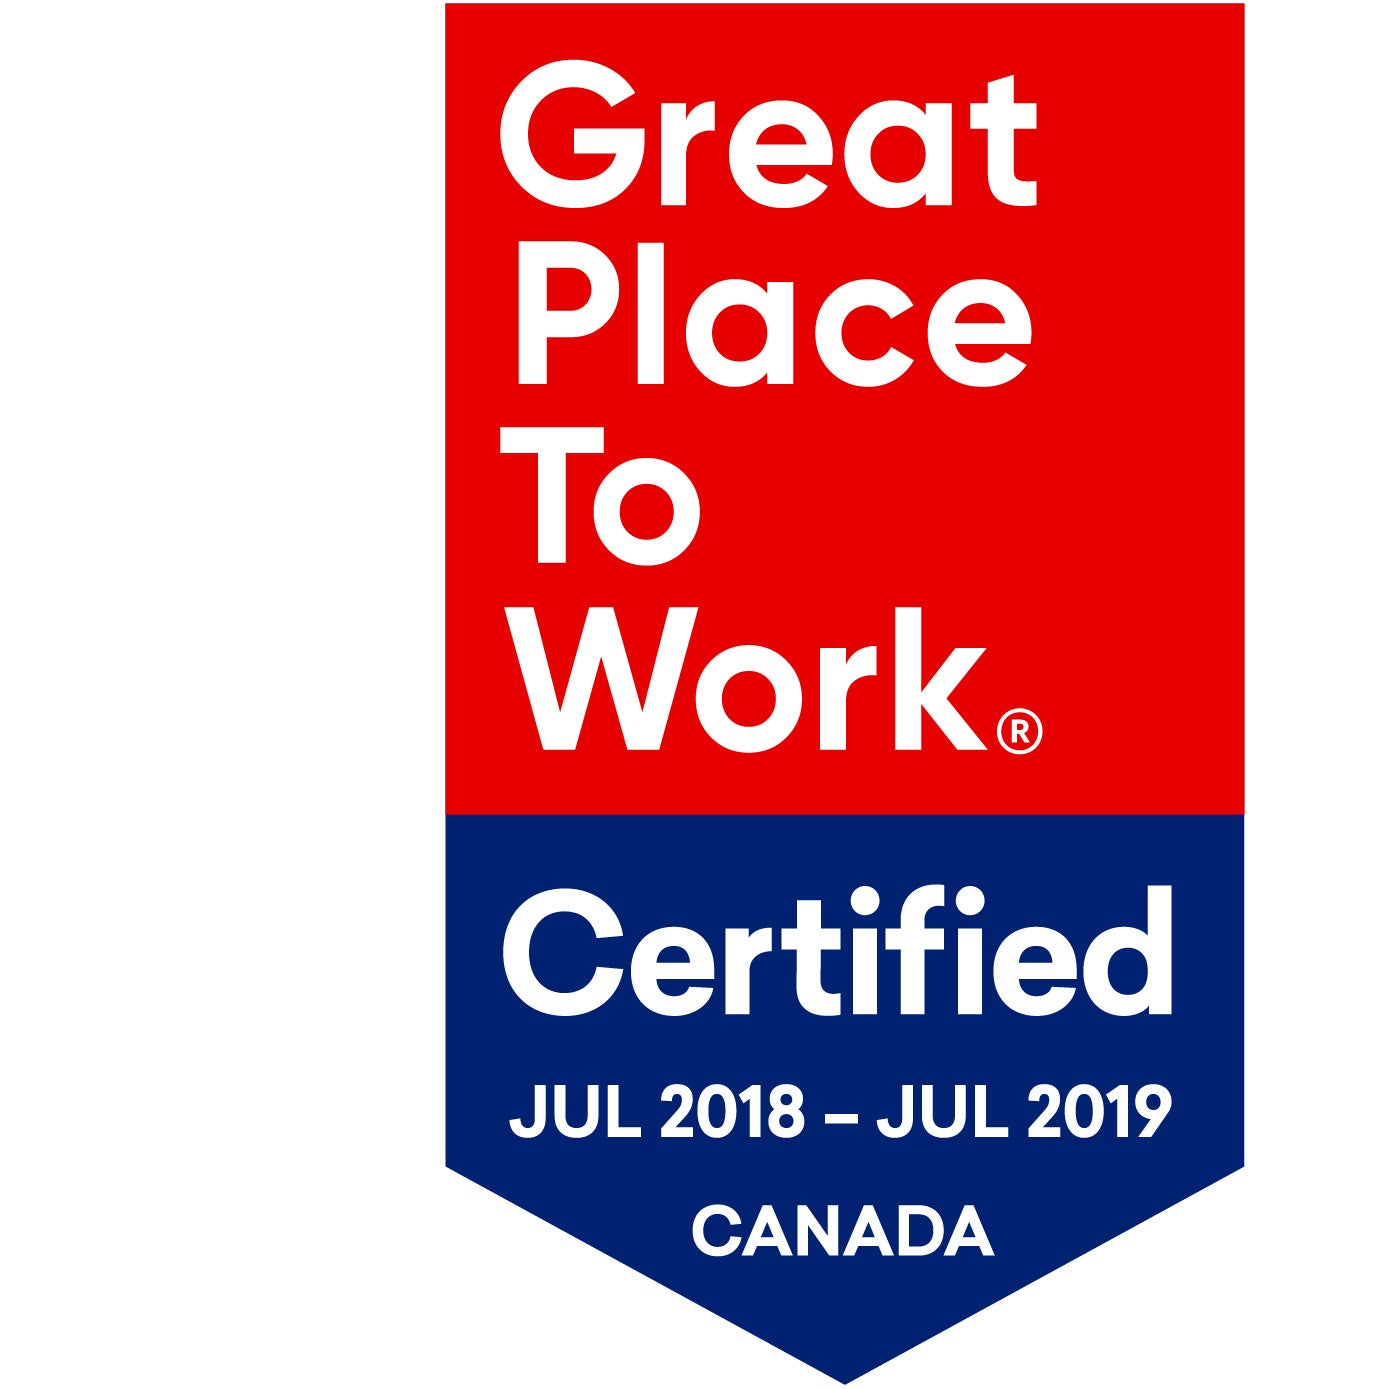 2018-2019 Great Place To Work Certified